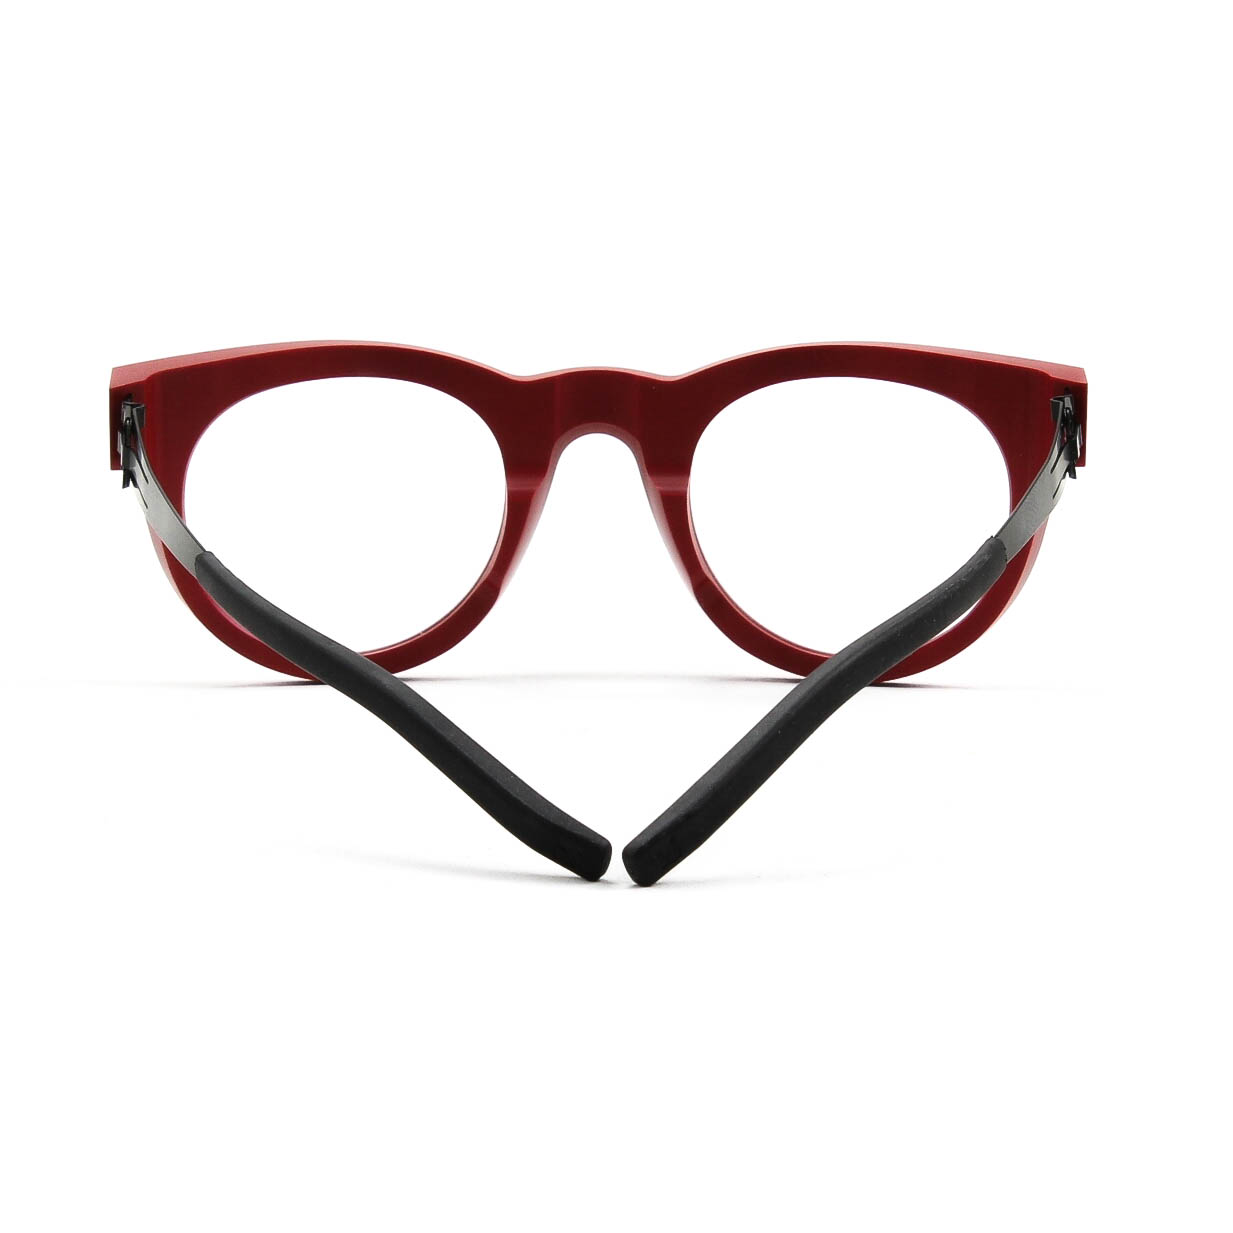 ic! berlin A0917 Nameless 17 Eyeglasses Just Red Rough ...